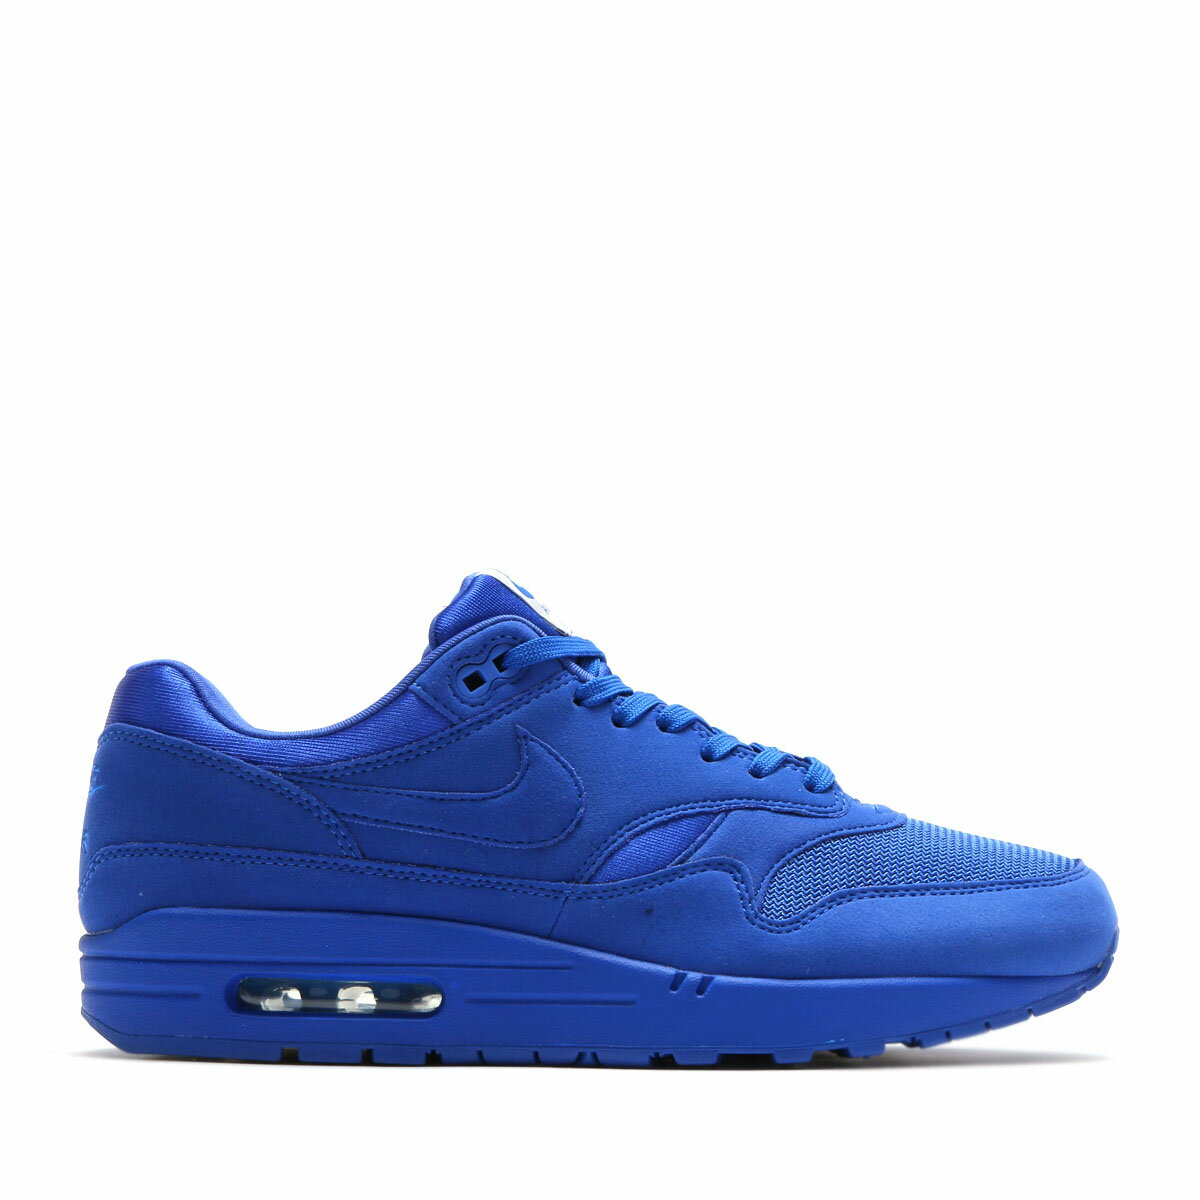 NIKE AIR MAX 1 PREMIUM (ナイキ エア マックス 1 プレミアム) GAME ROYAL/GAME ROYAL-NEUTRAL GREY-WHITE17SU-S